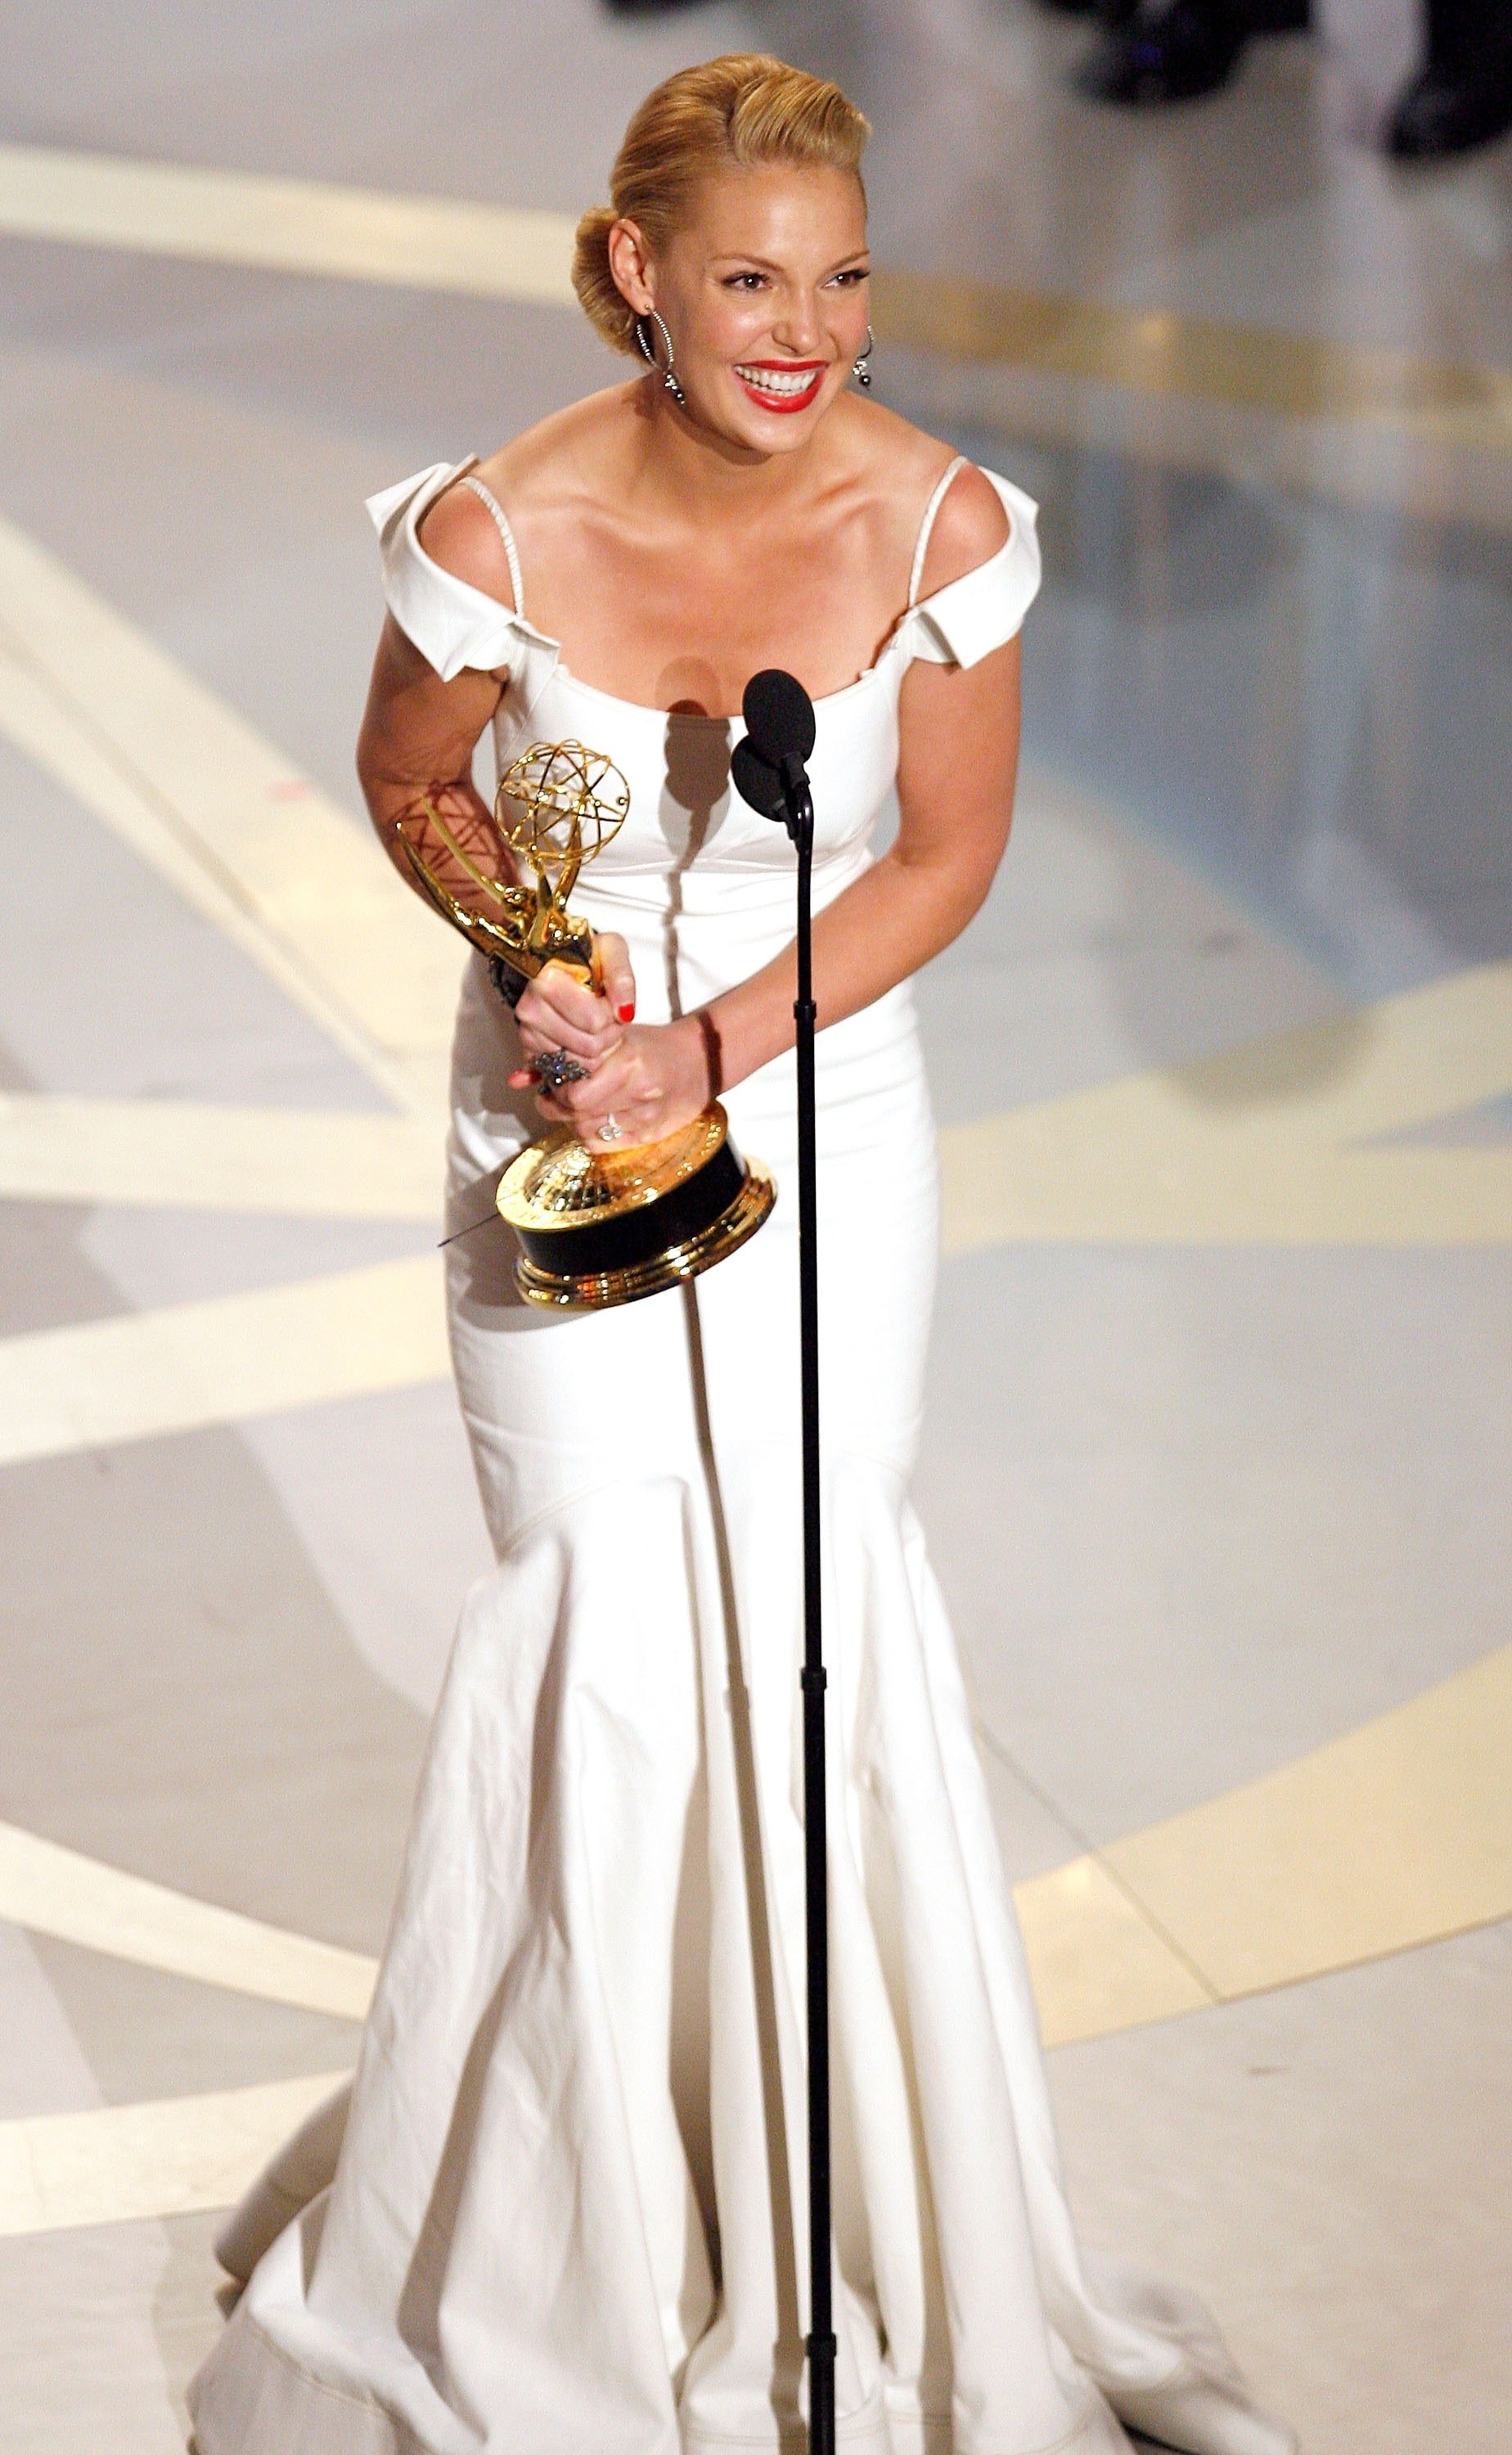 Heigl leans into a microphone while clutching an Emmy in her hands